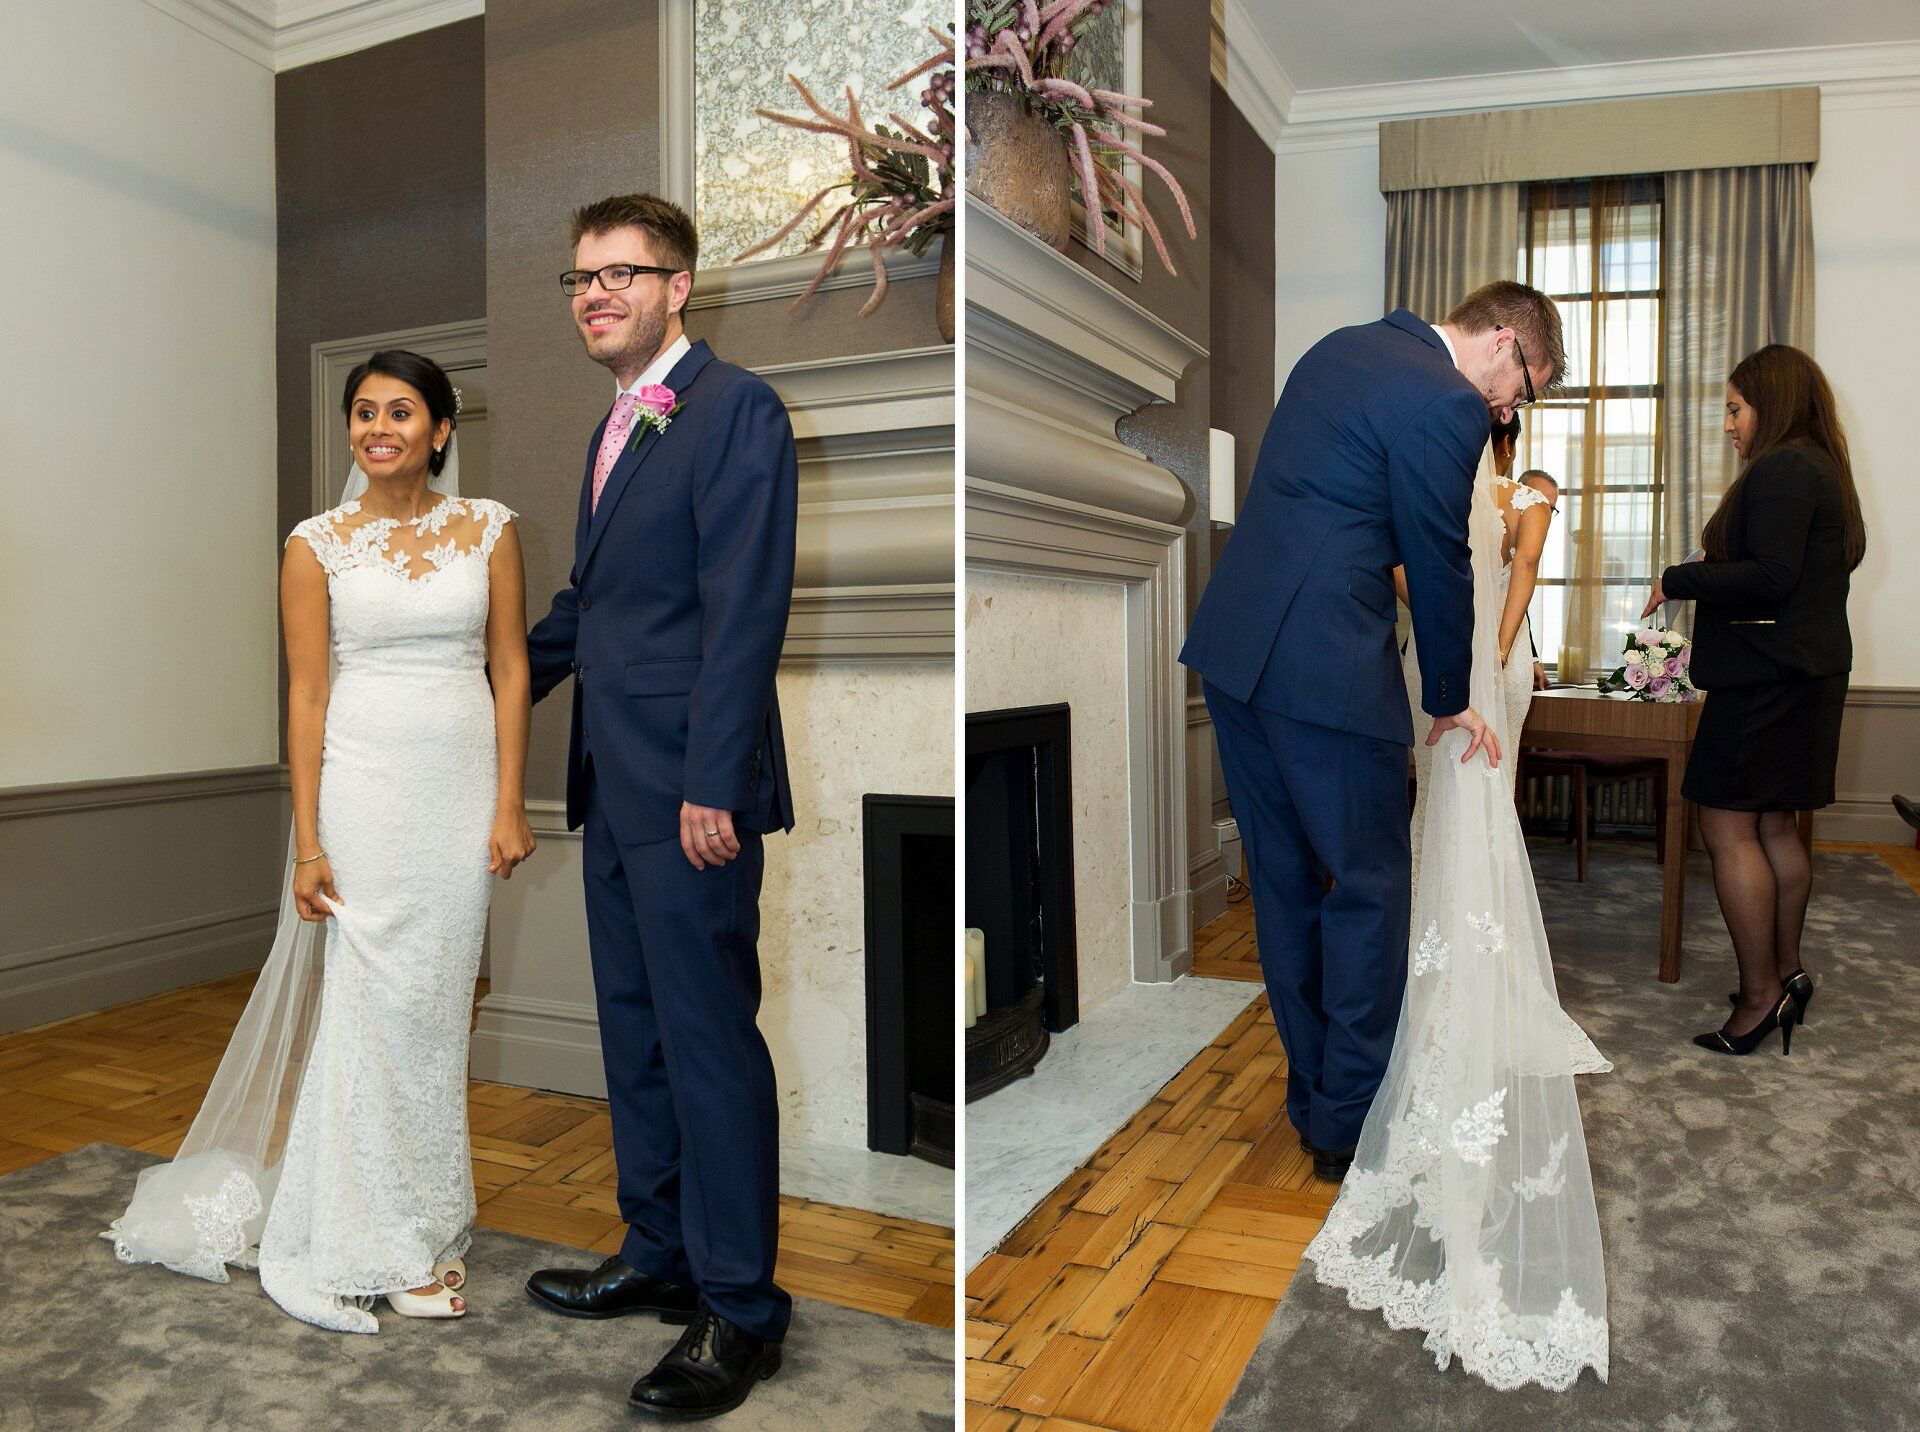 bride and groom in the mayfair room at old marylebone town hall showing bride's long cathedral veil